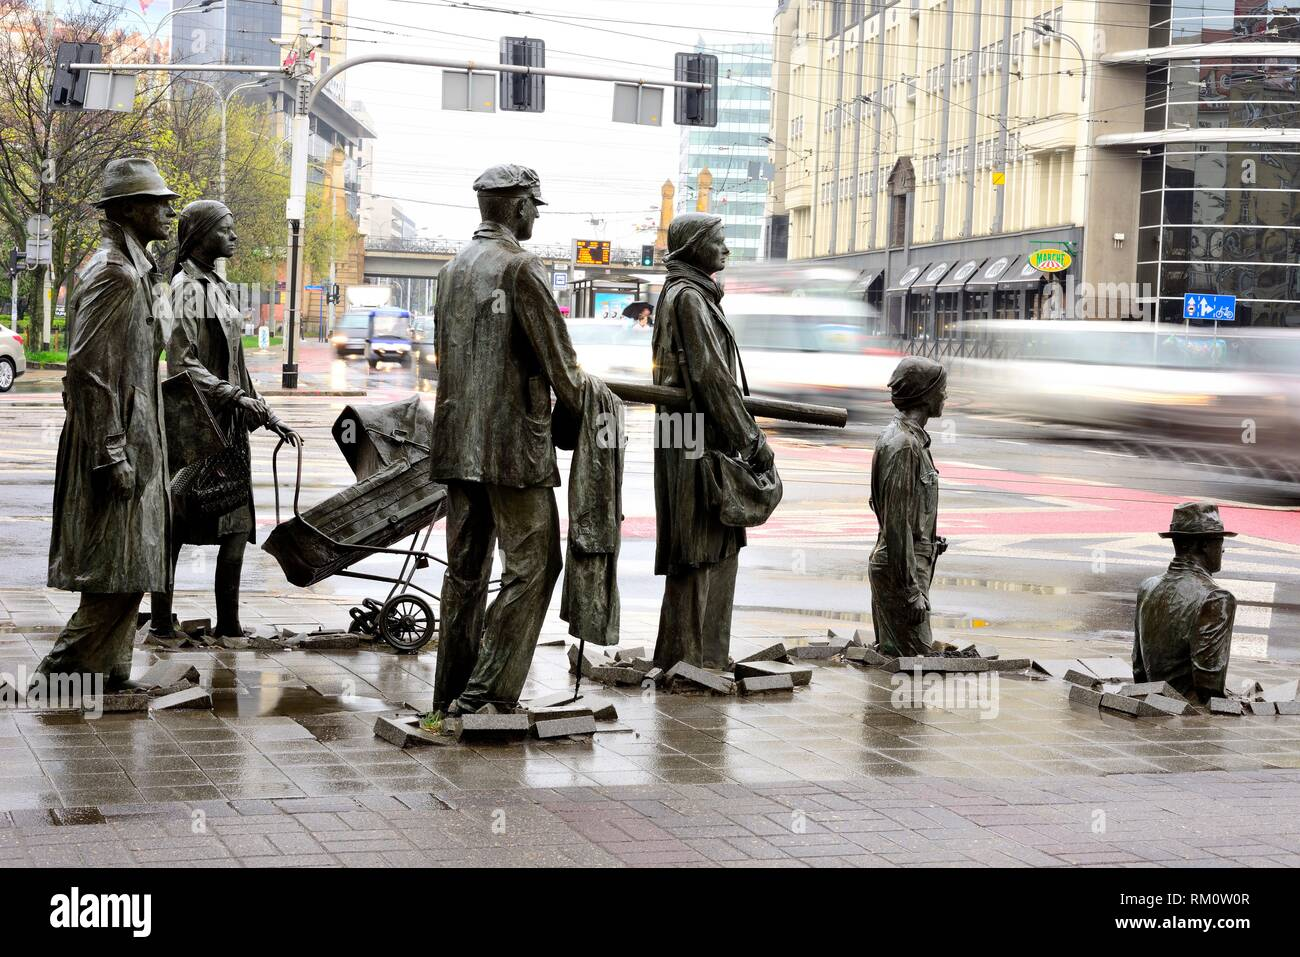 The Anonymous pedestrian, The sculpture presents people who go down, under the pavement and emerge from it, Swidnicka street, Wroclaw ''Breslau'', - Stock Image